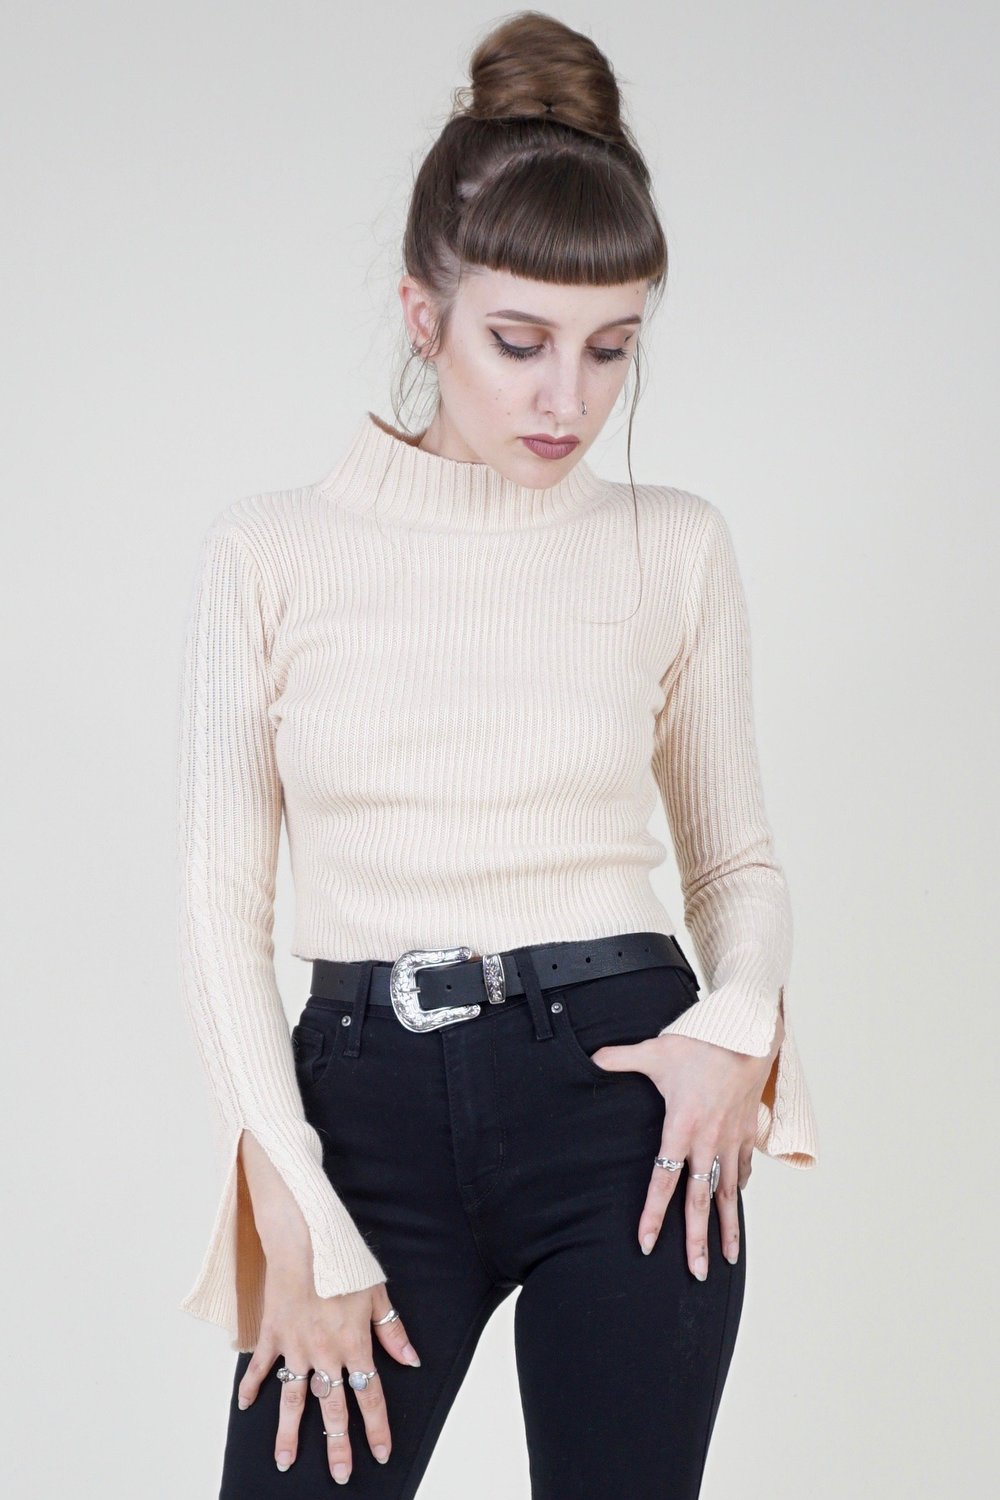 Flare To Be Different Turtleneck Crop Top .jpg